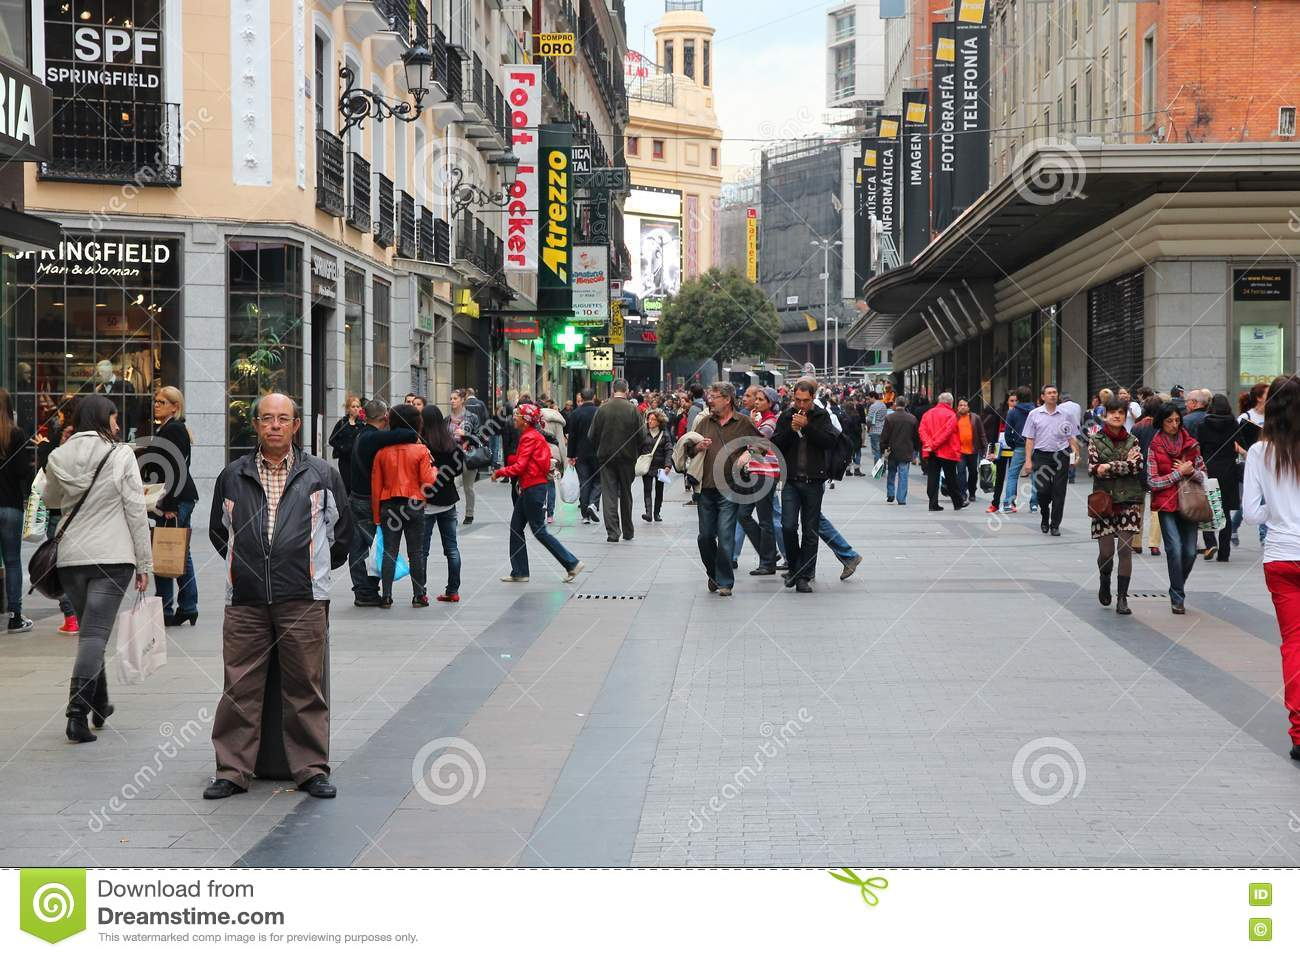 b1a00395d73 Madrid editorial stock photo. Image of crowd